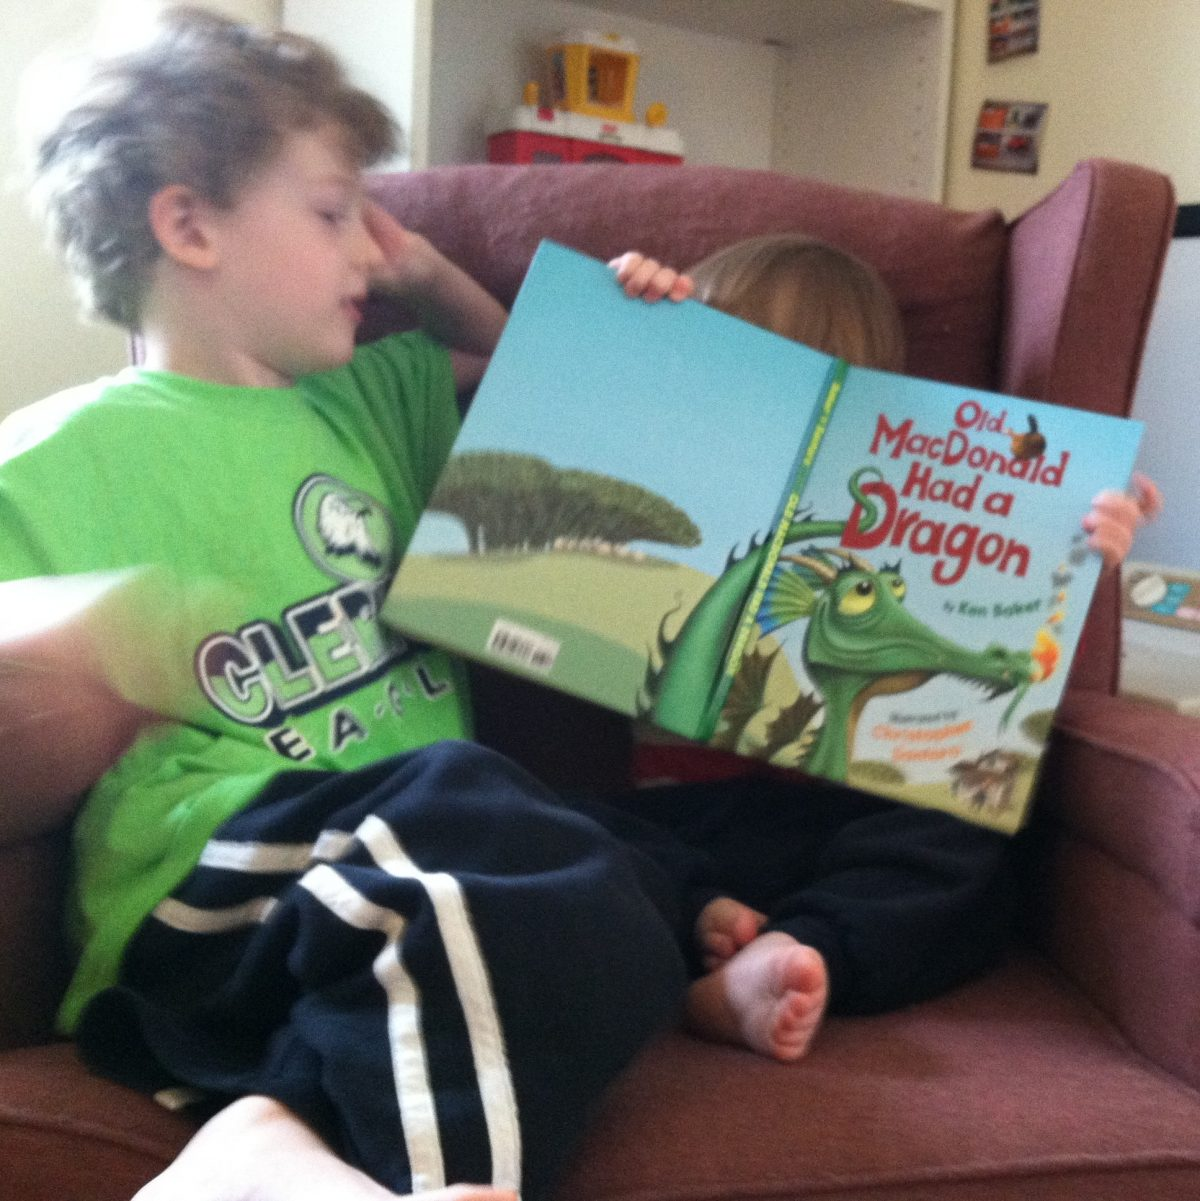 Brothers reading Old MacDonald Had a Dragon